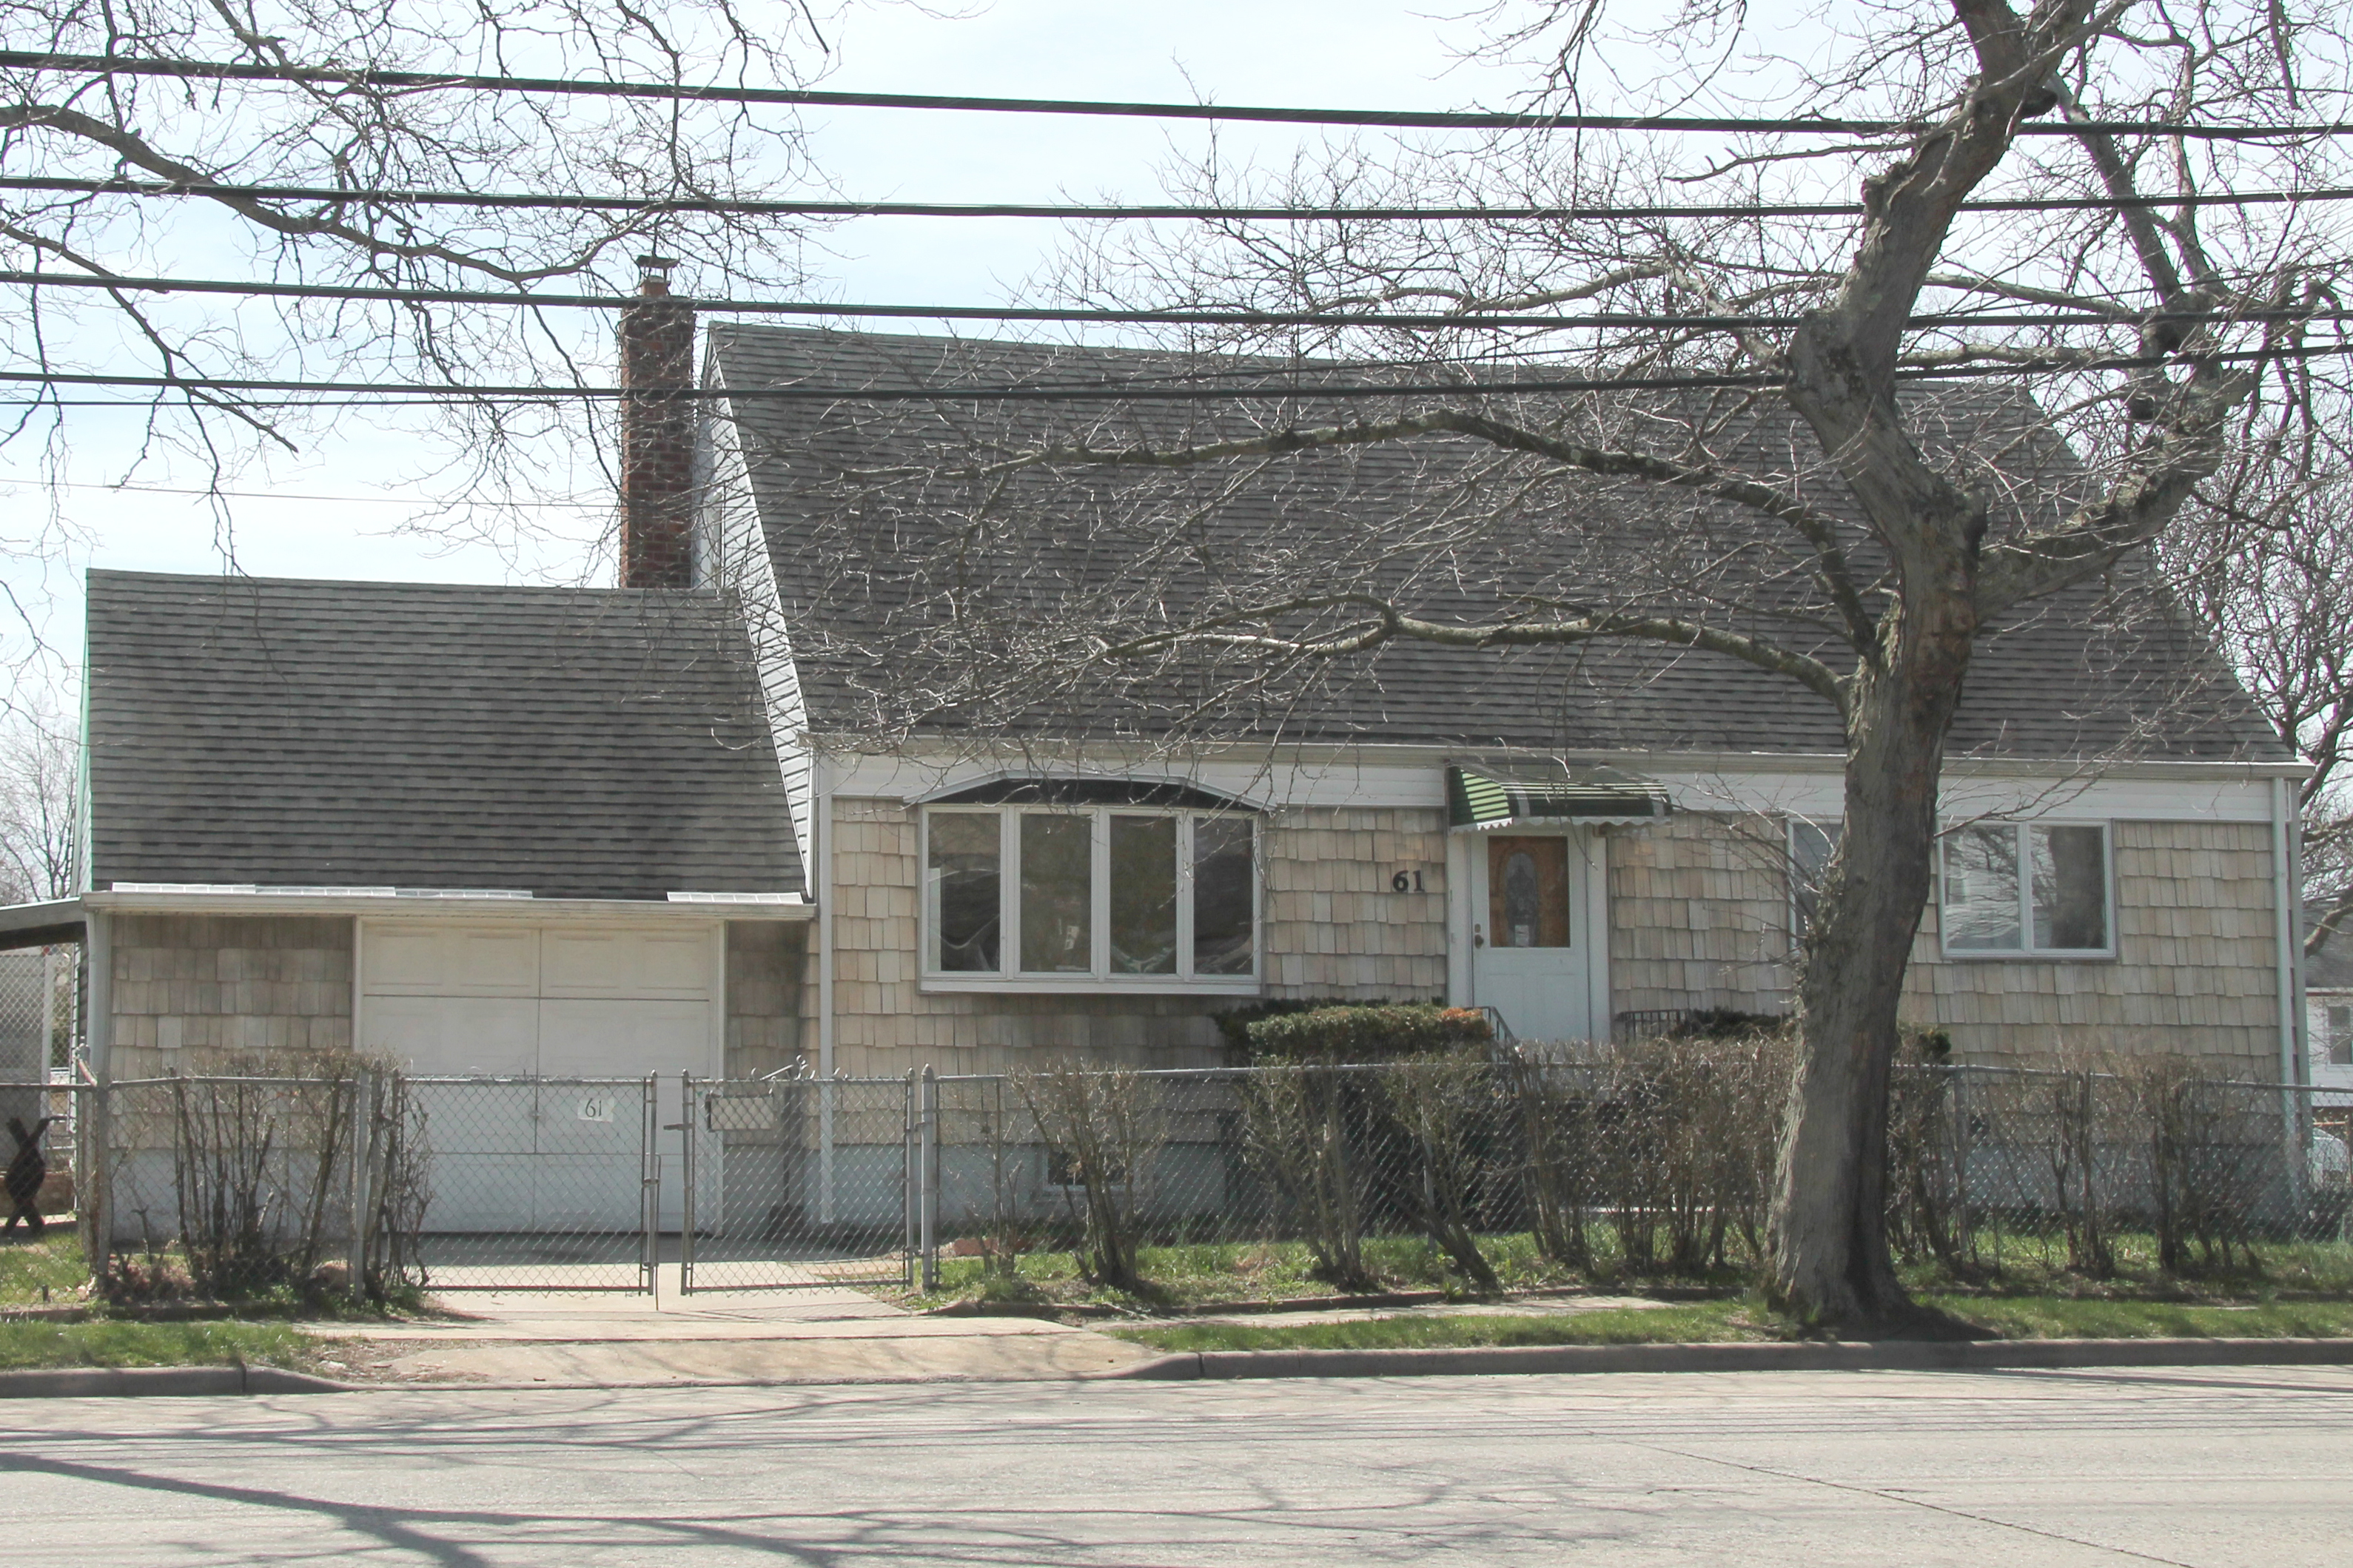 Single Family Home for Sale at Cape 61 Atlantic Ave Freeport, New York 11520 United States